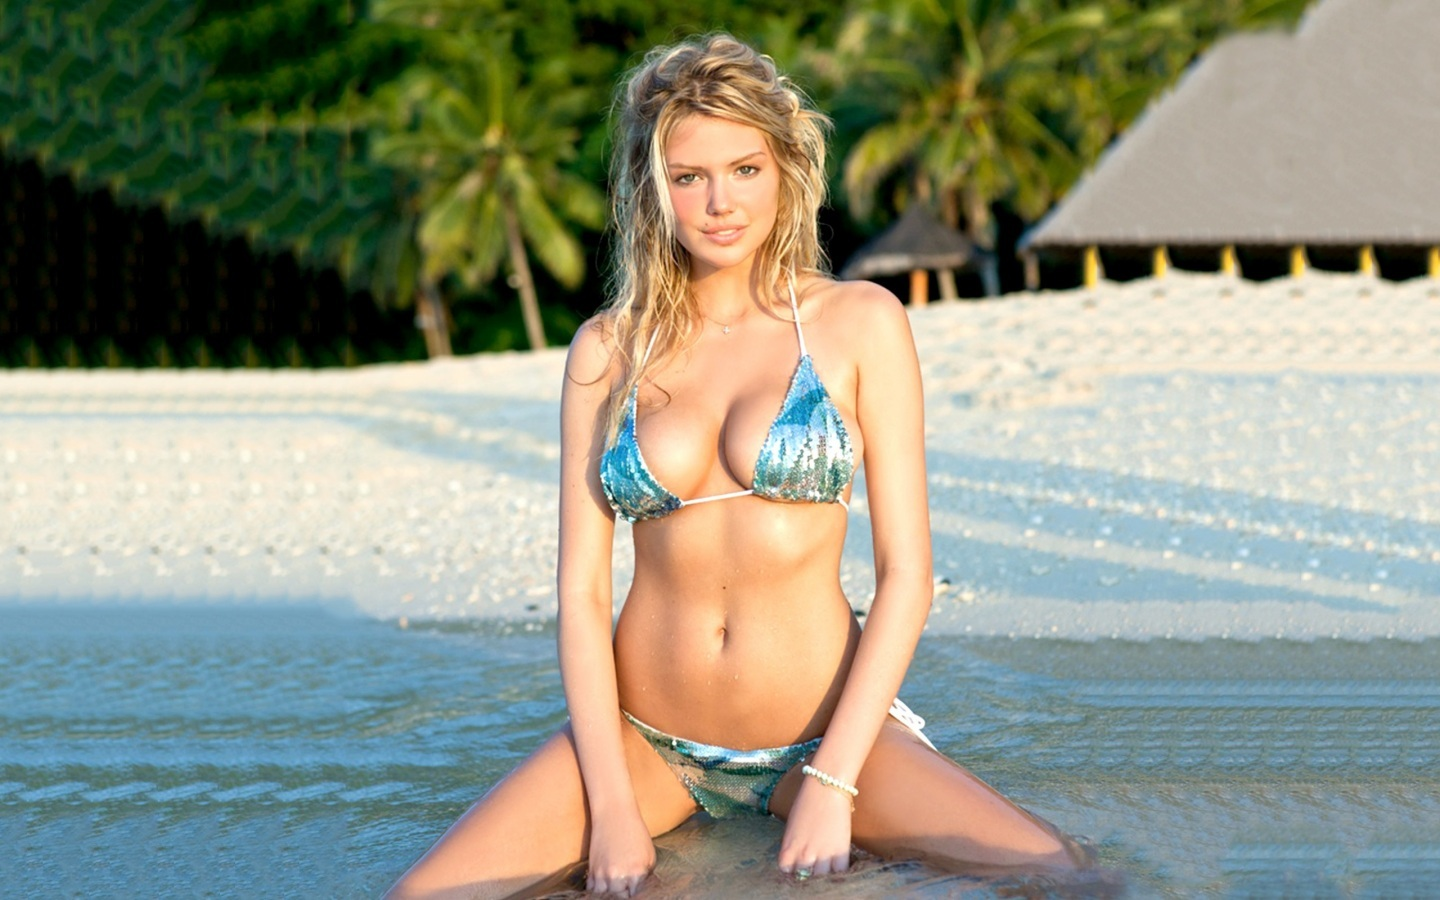 Kate Upton Wallpapers Hd Wallpapers Early Celebrity Picture Kate Upton Wallpaper Background